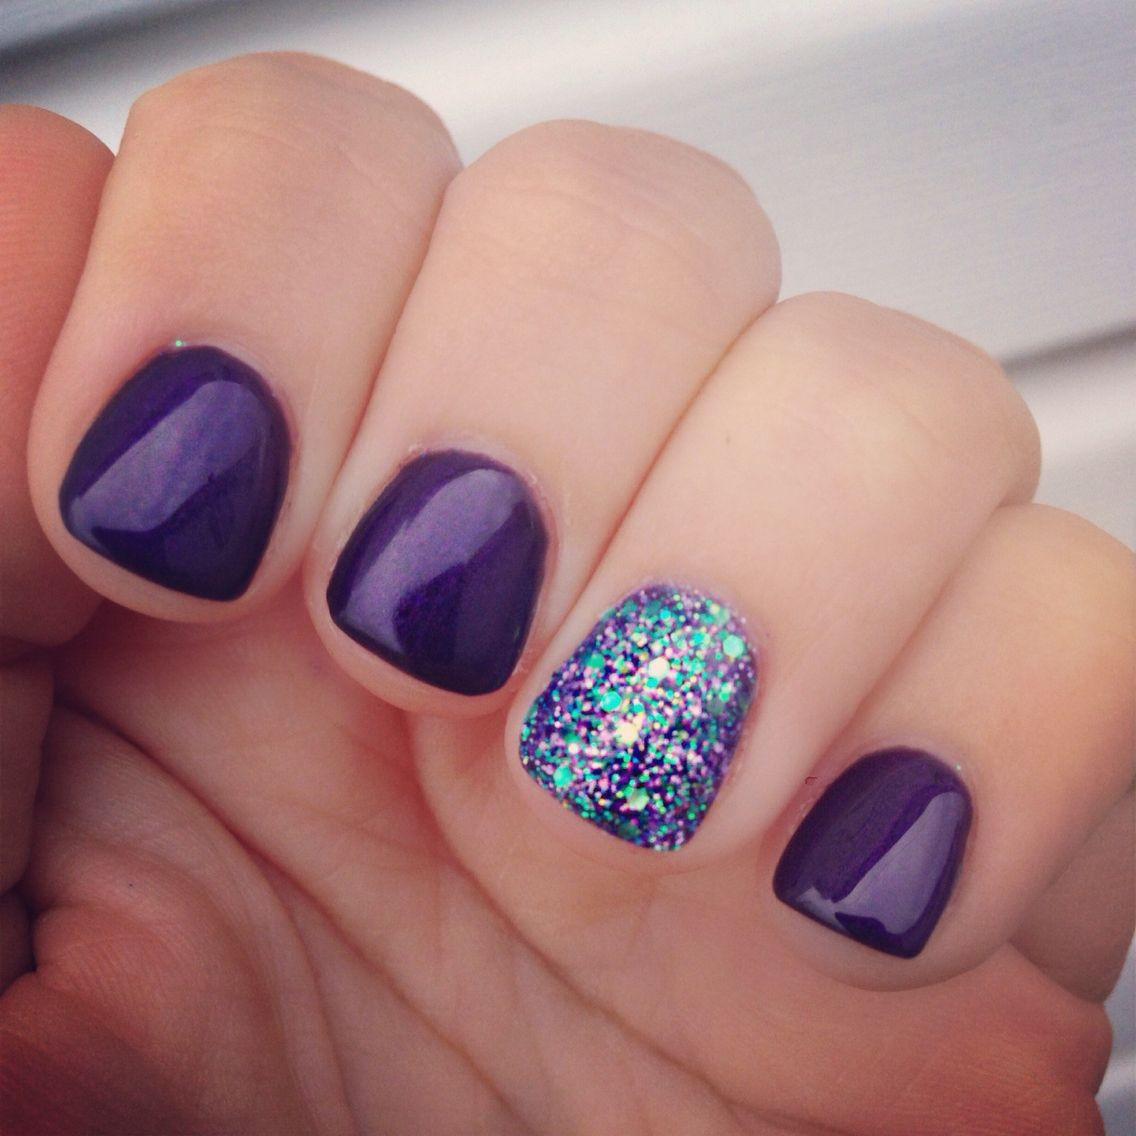 Peacock inspired nails #nailart #purple #glitter #peacock · Gel Manicure  DesignsNails ... - Peacock Inspired Nails #nailart #purple #glitter #peacock Nails